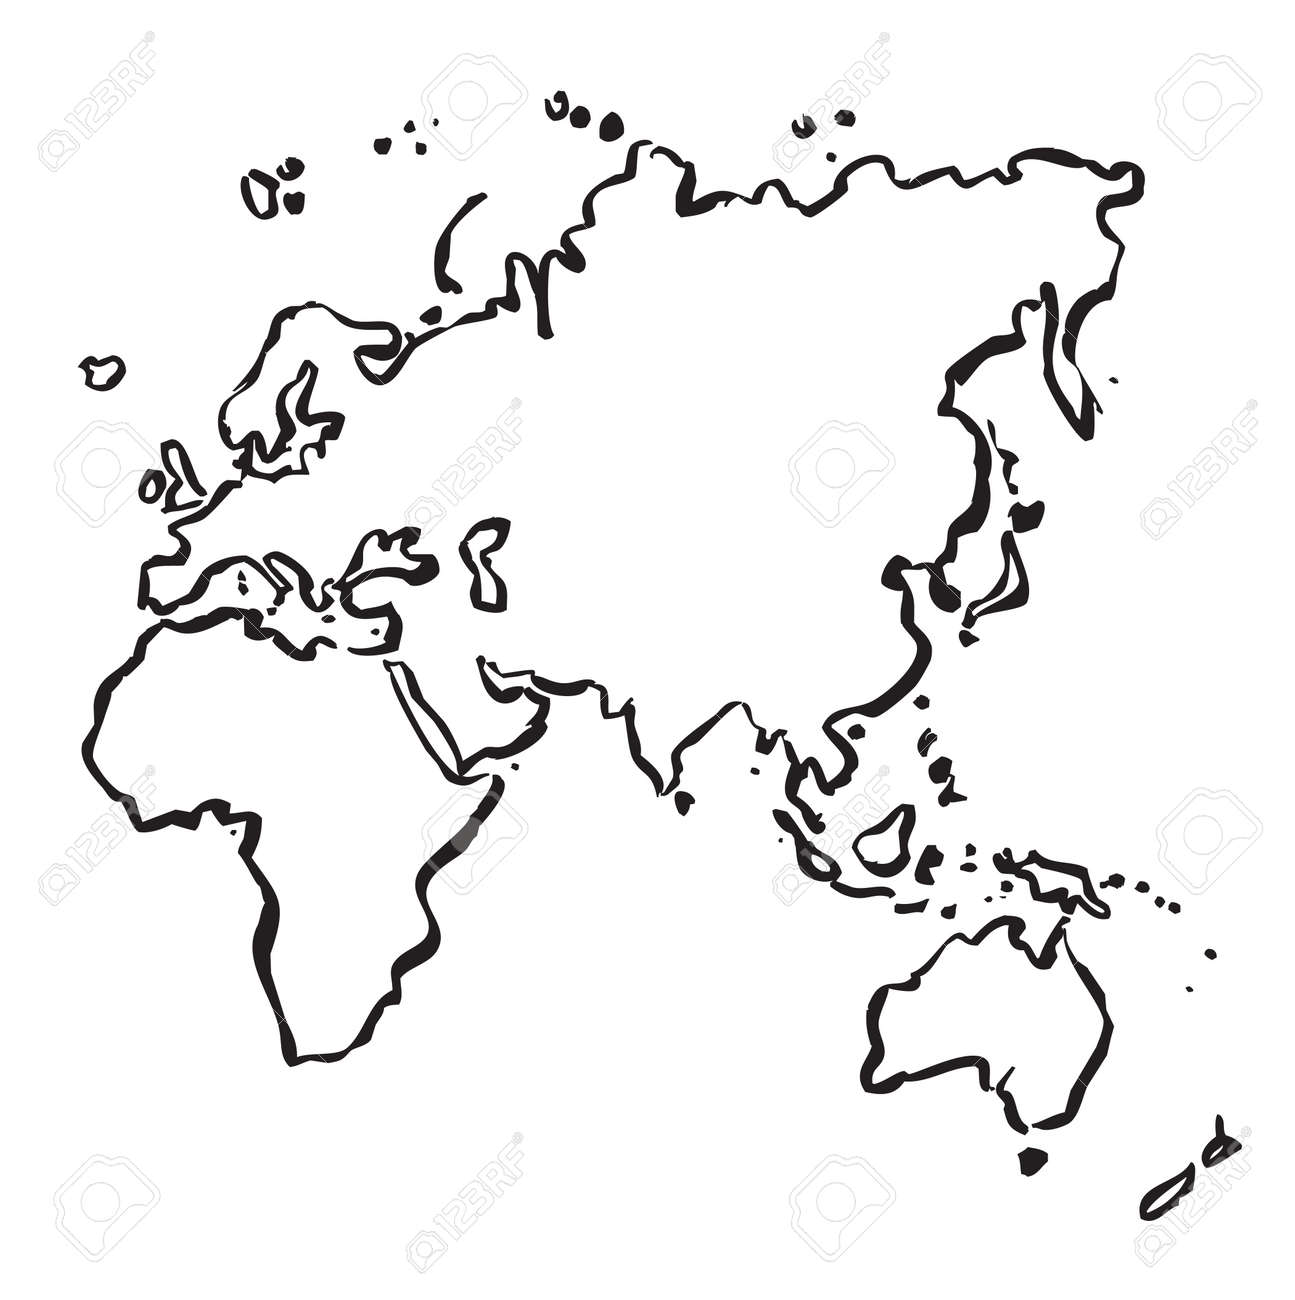 Australia Map In Europe.Outline Map Of Europe Asia Africa And Australia